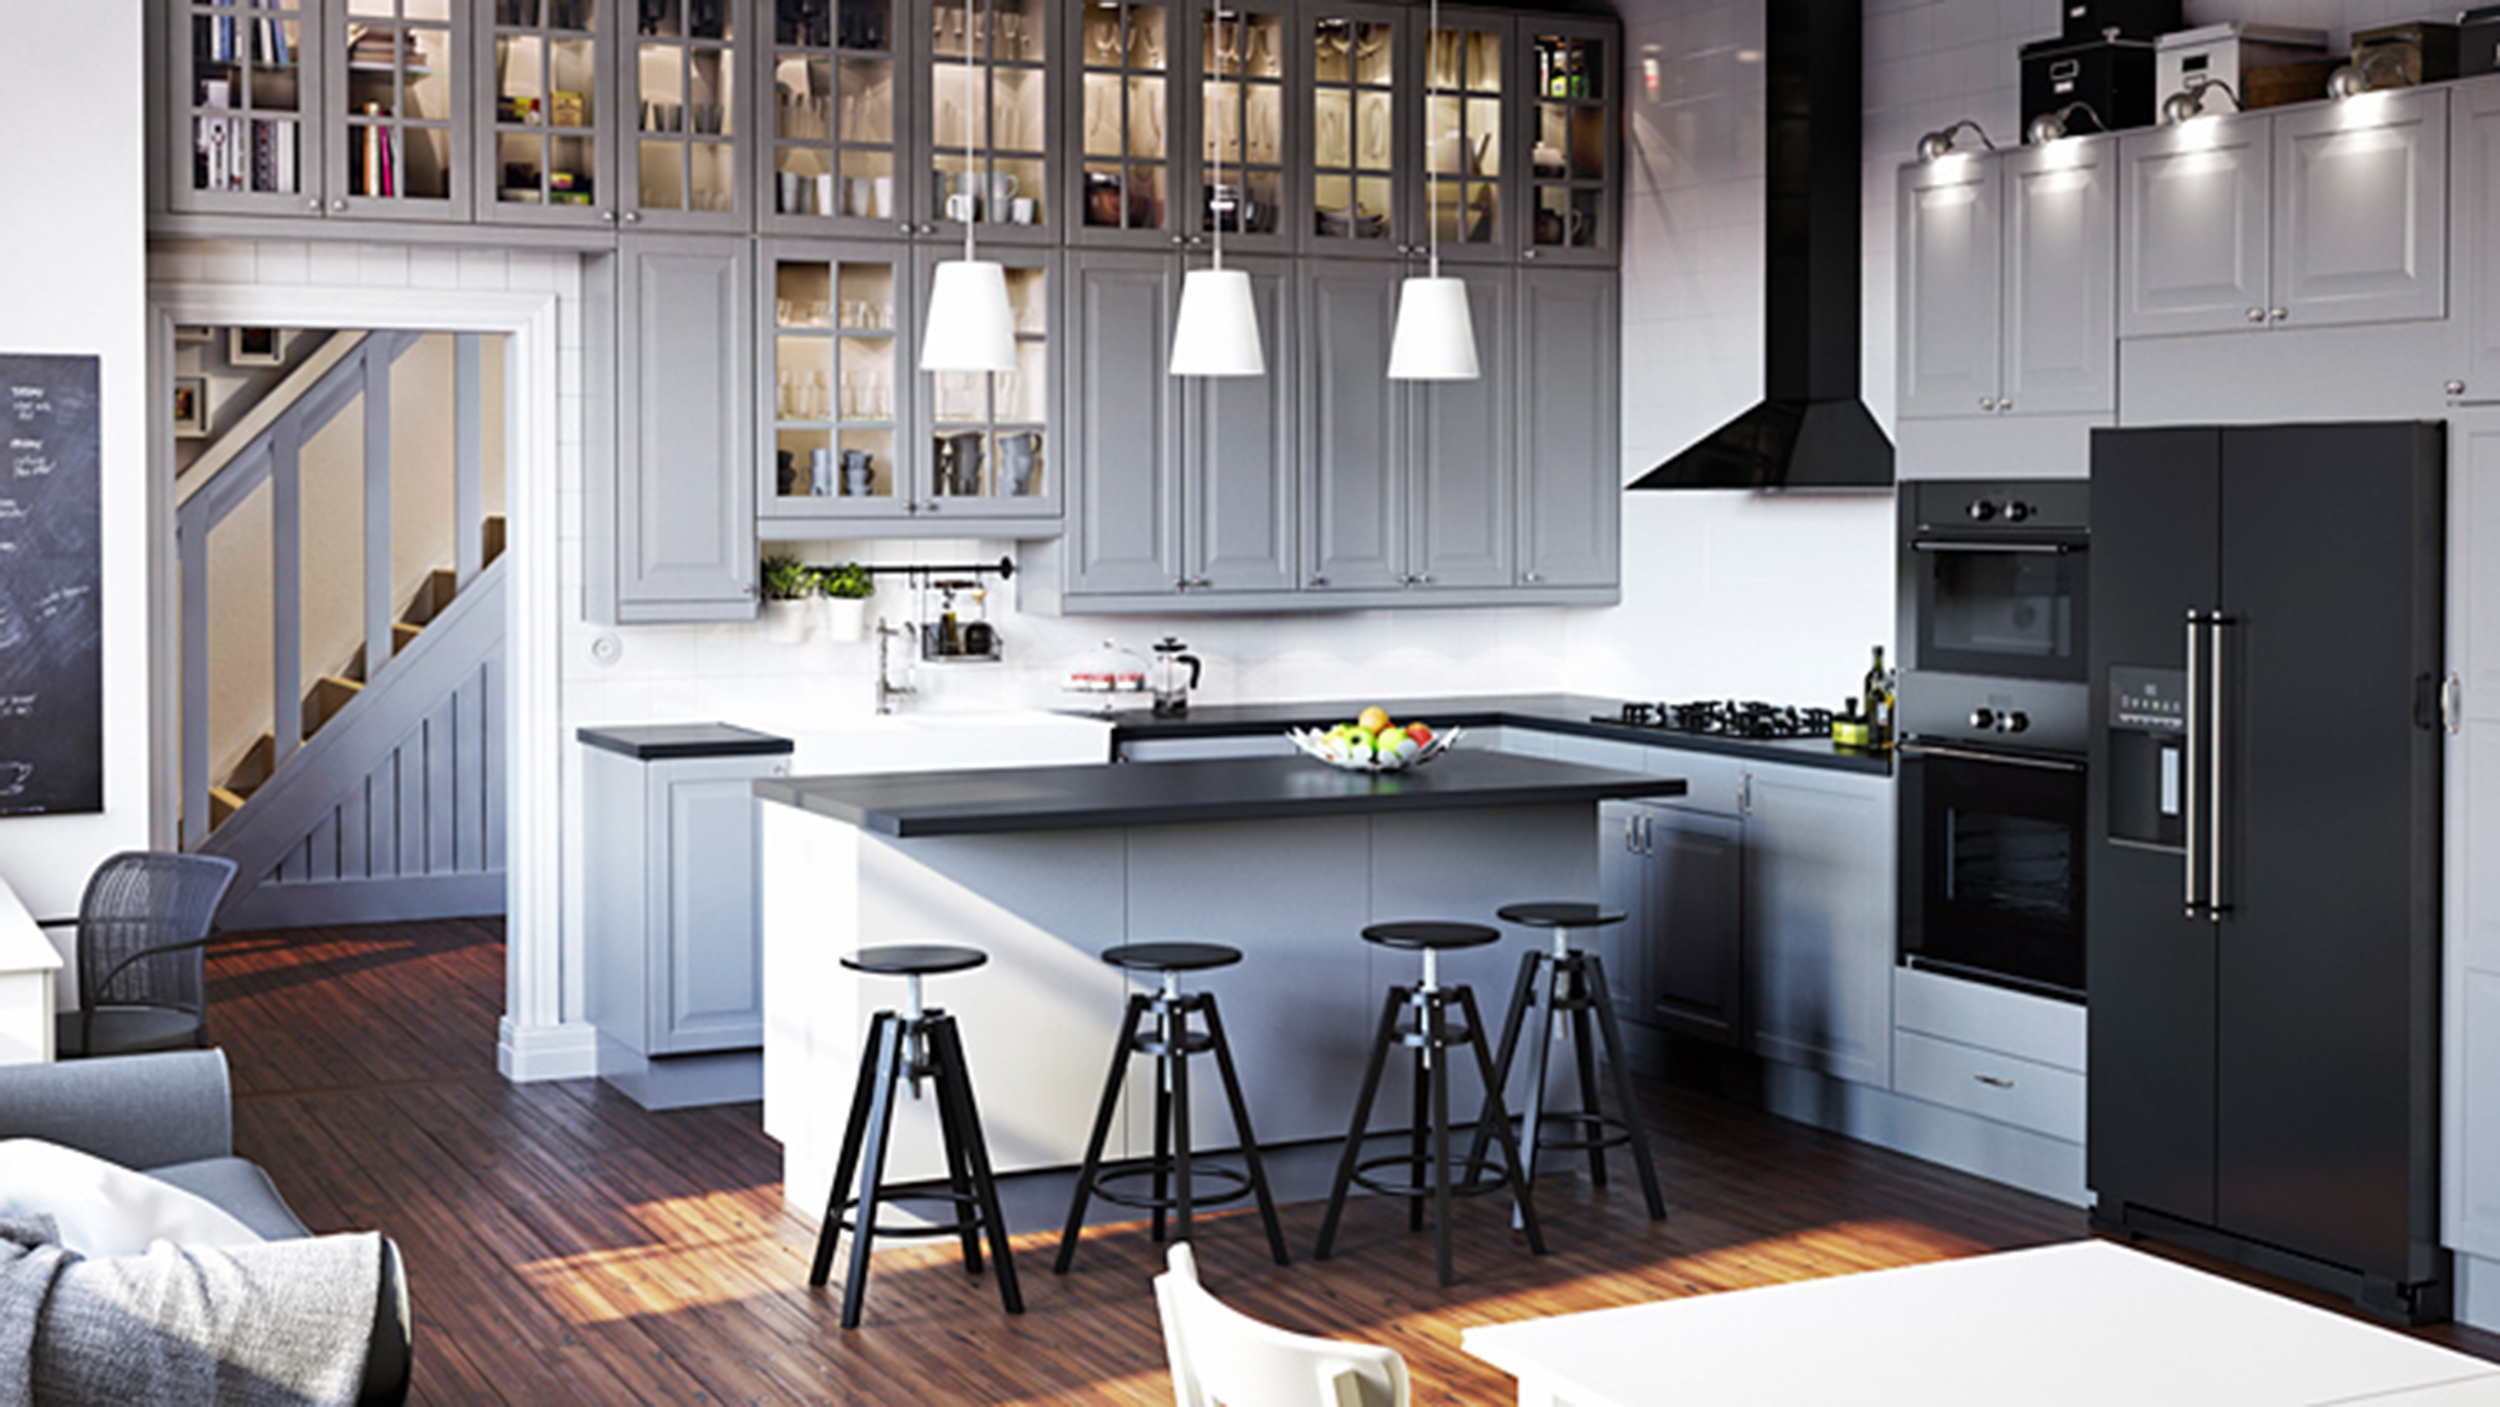 Lovable ikea kitchen catalog together with ikea reveals 75 of catalog images are cgi today - Inspiring Home Ideas